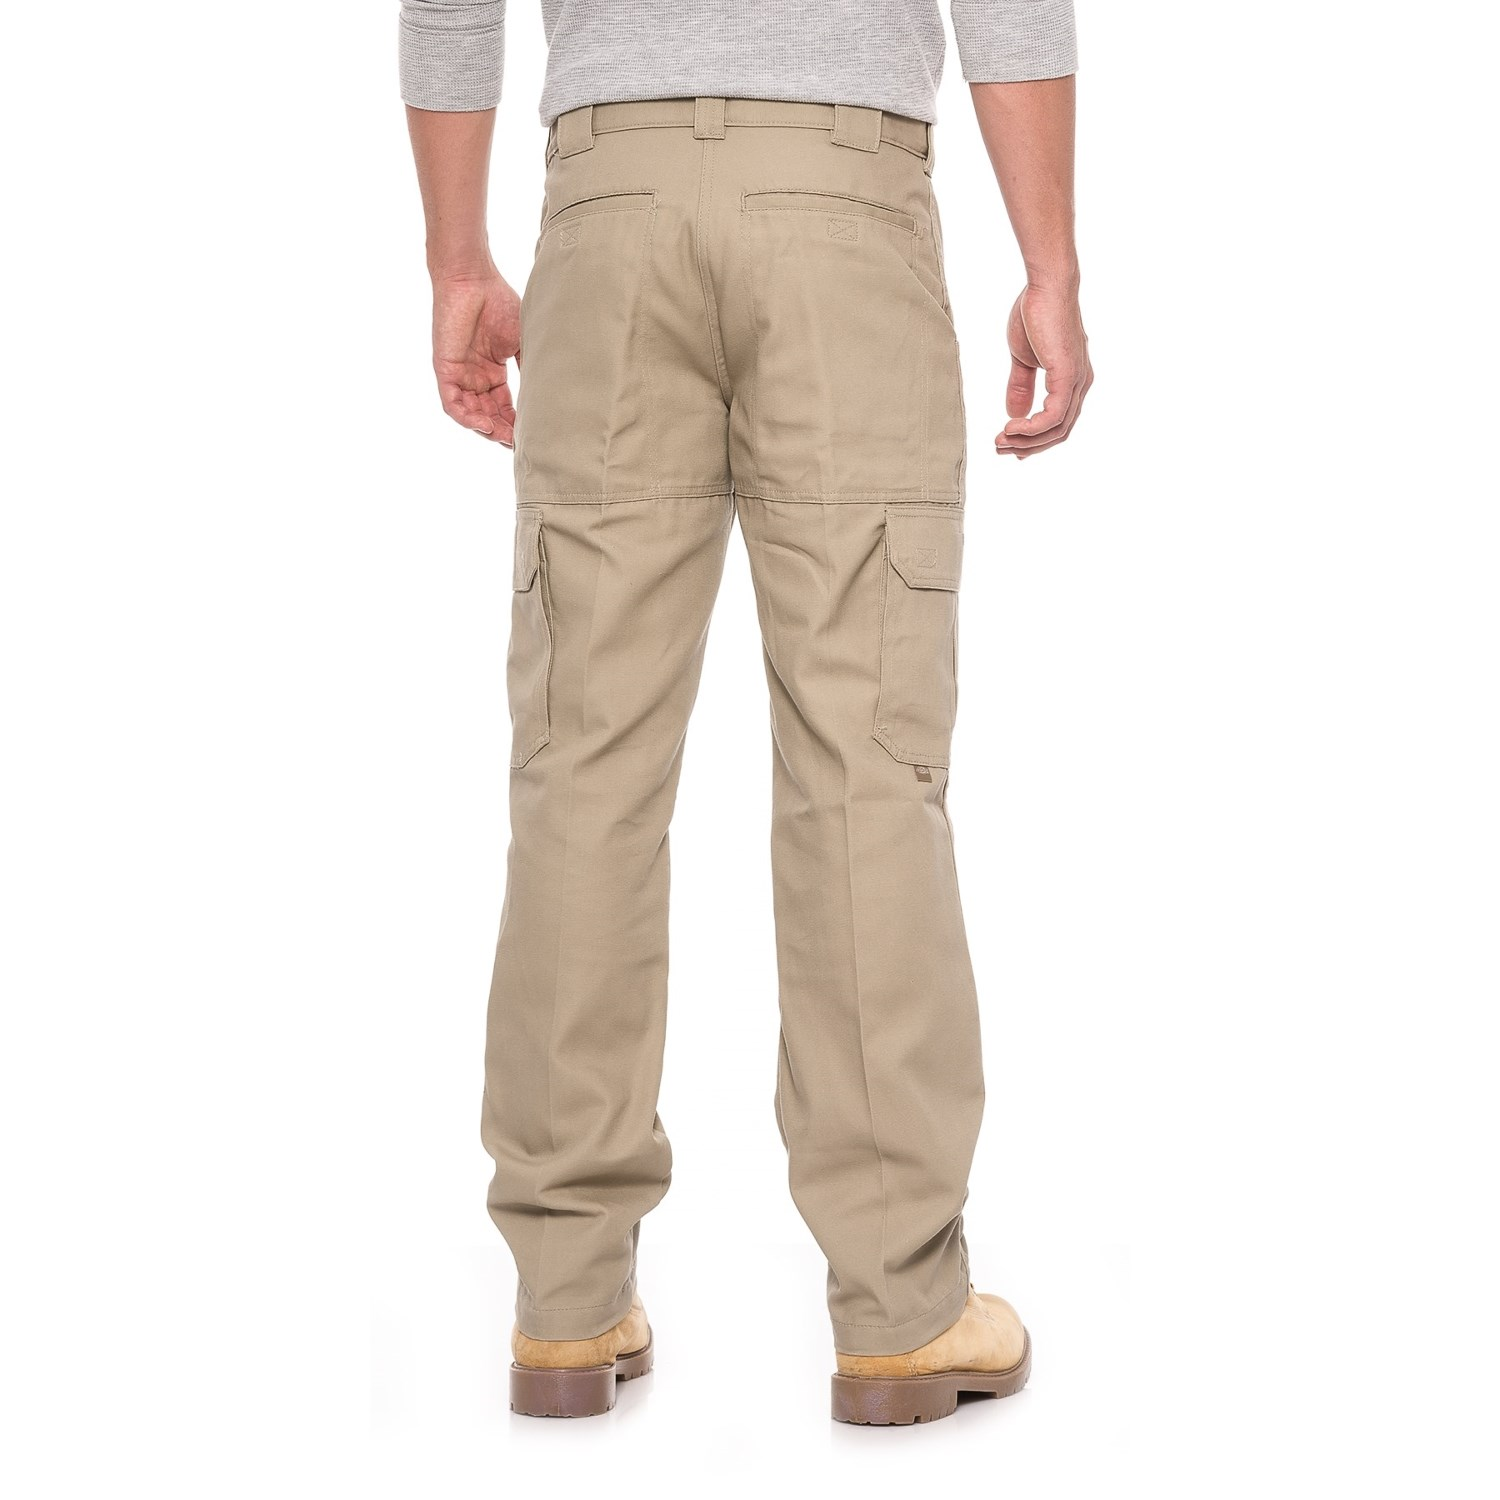 6b0606cb47e Dickies Canvas Tactical Pants (For Men) - Save 60%